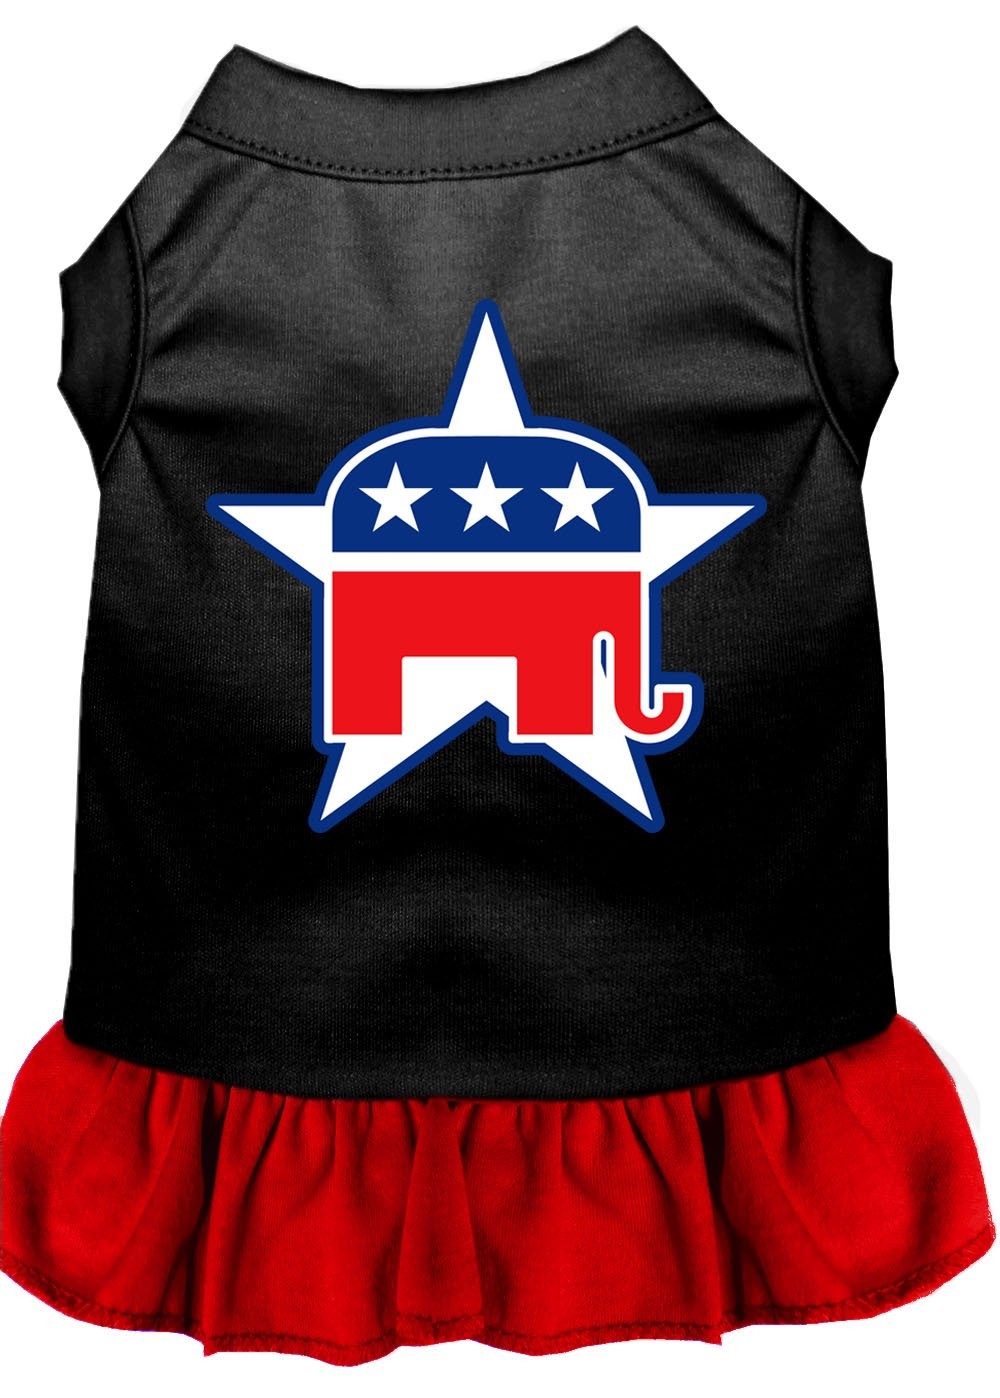 Republican Dog Dress Outfit black and red